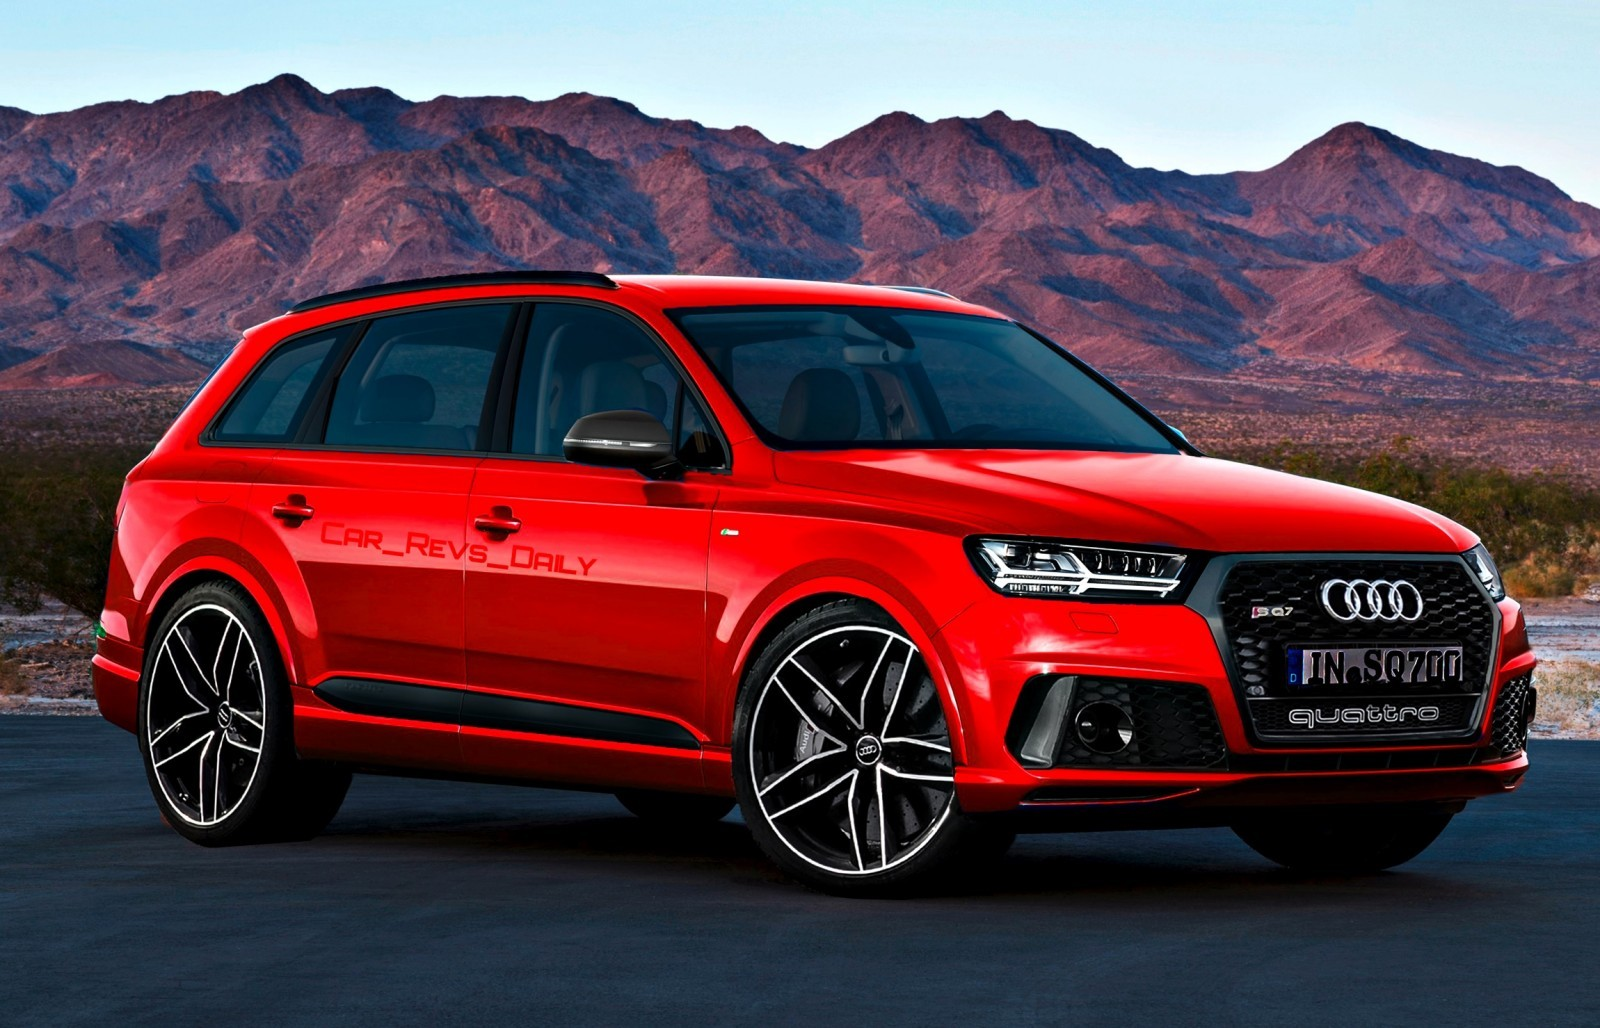 Future Suv Renderings  2016 Audi Rs Q7 10 » Carrevs